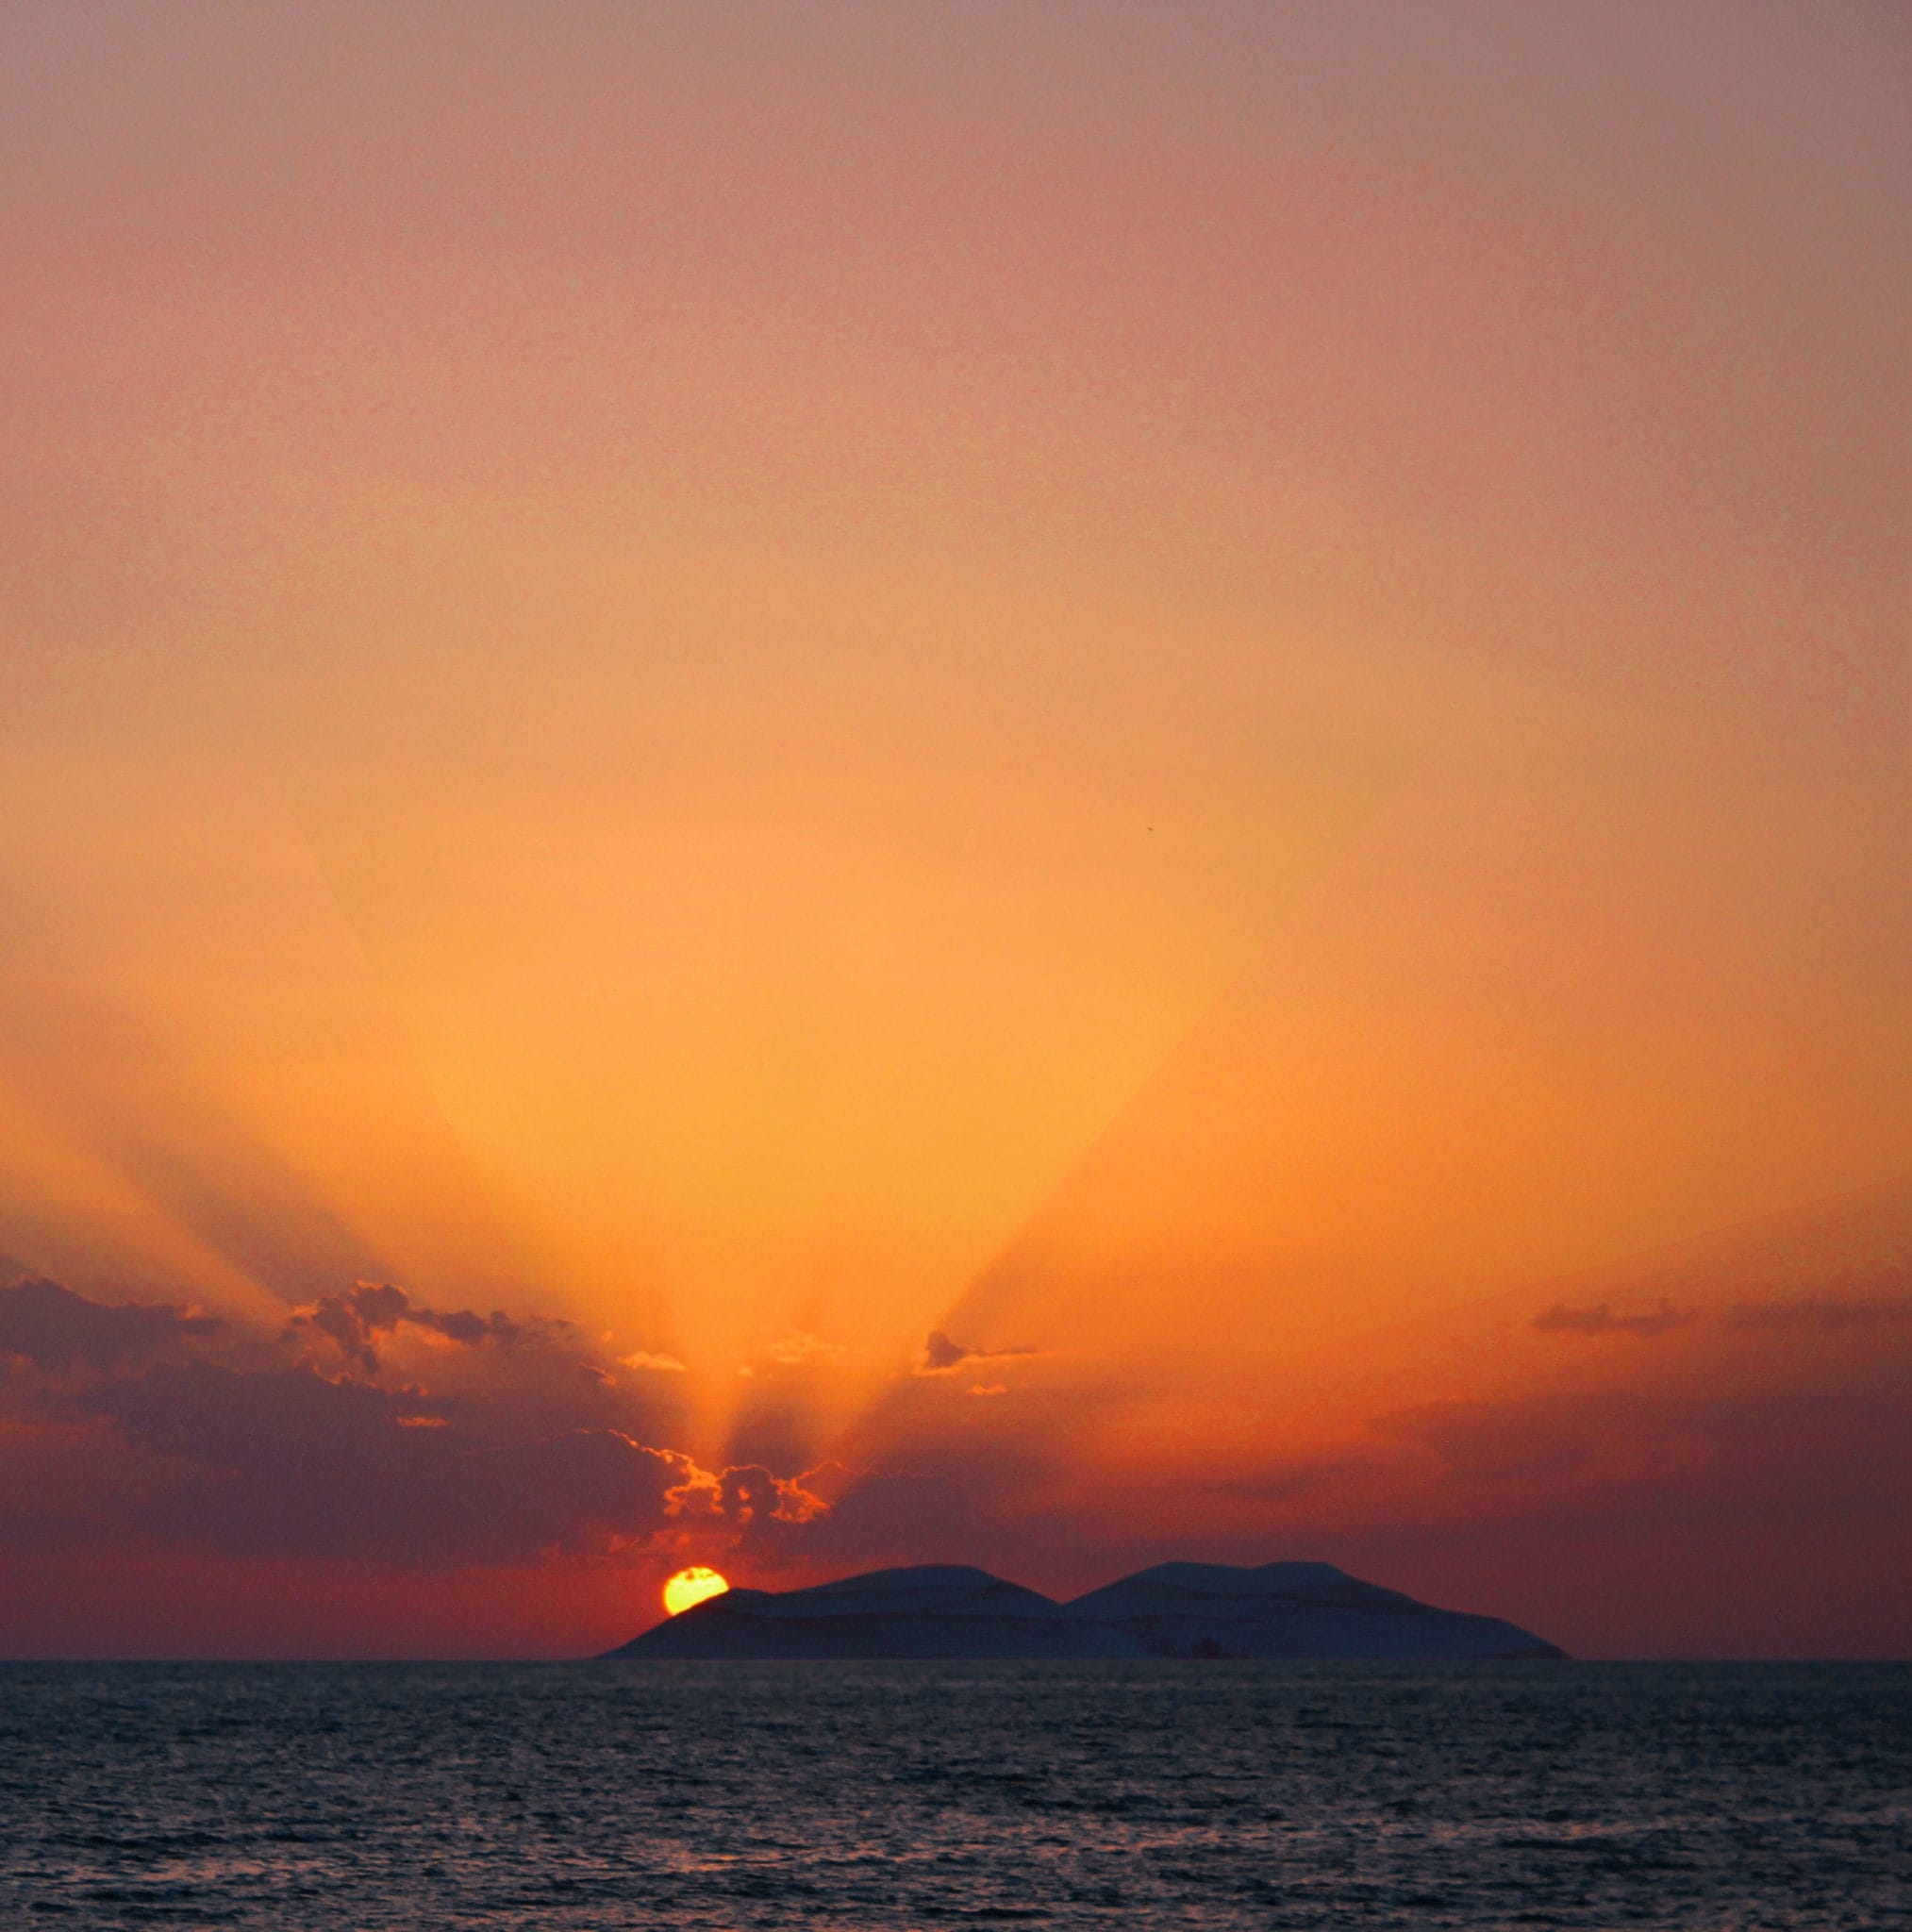 A orange and yellow sunset over the ocean.